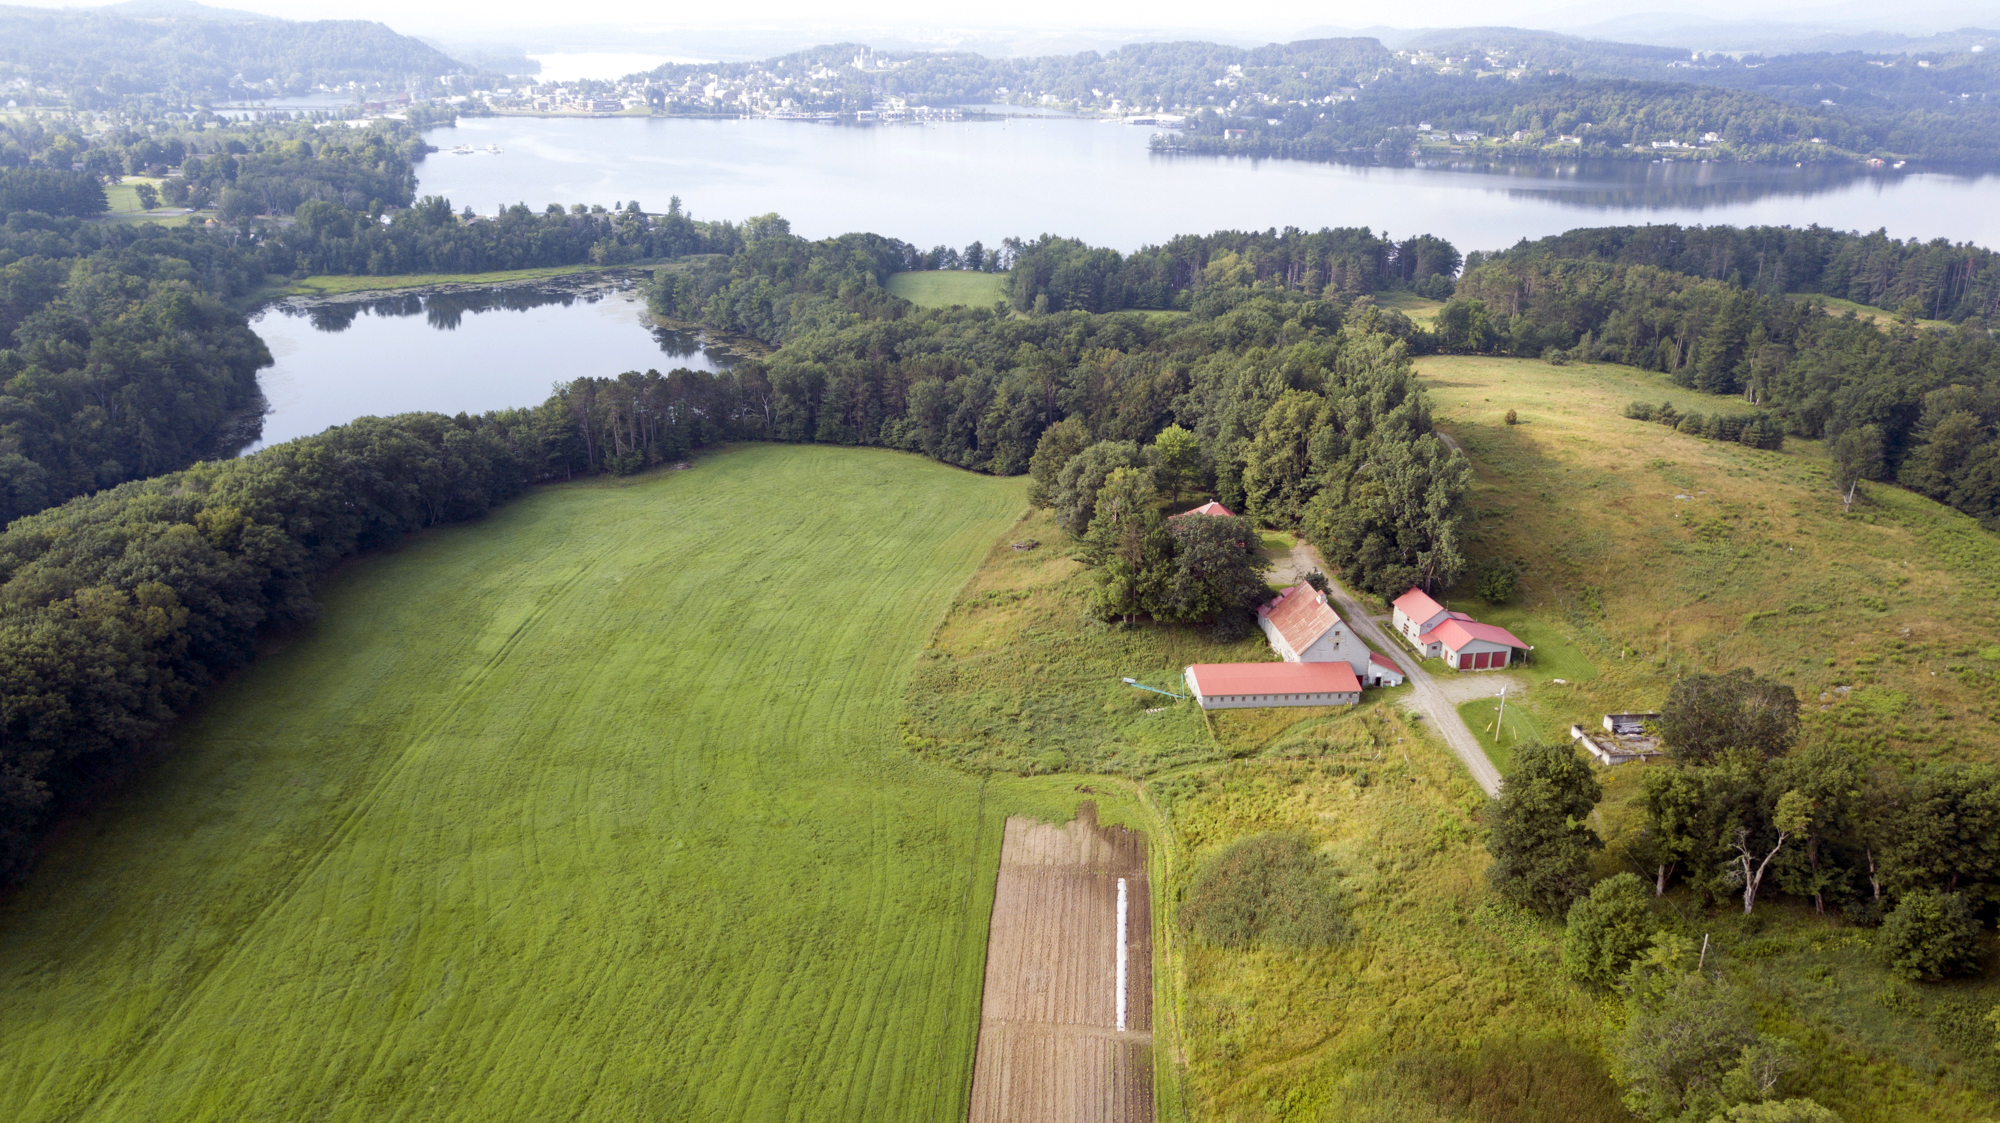 Bluffside Farm in Newport, on the shores of lake memphremagog. Photo by Caleb Kenna, Courtesy of Vermont Land Trust.